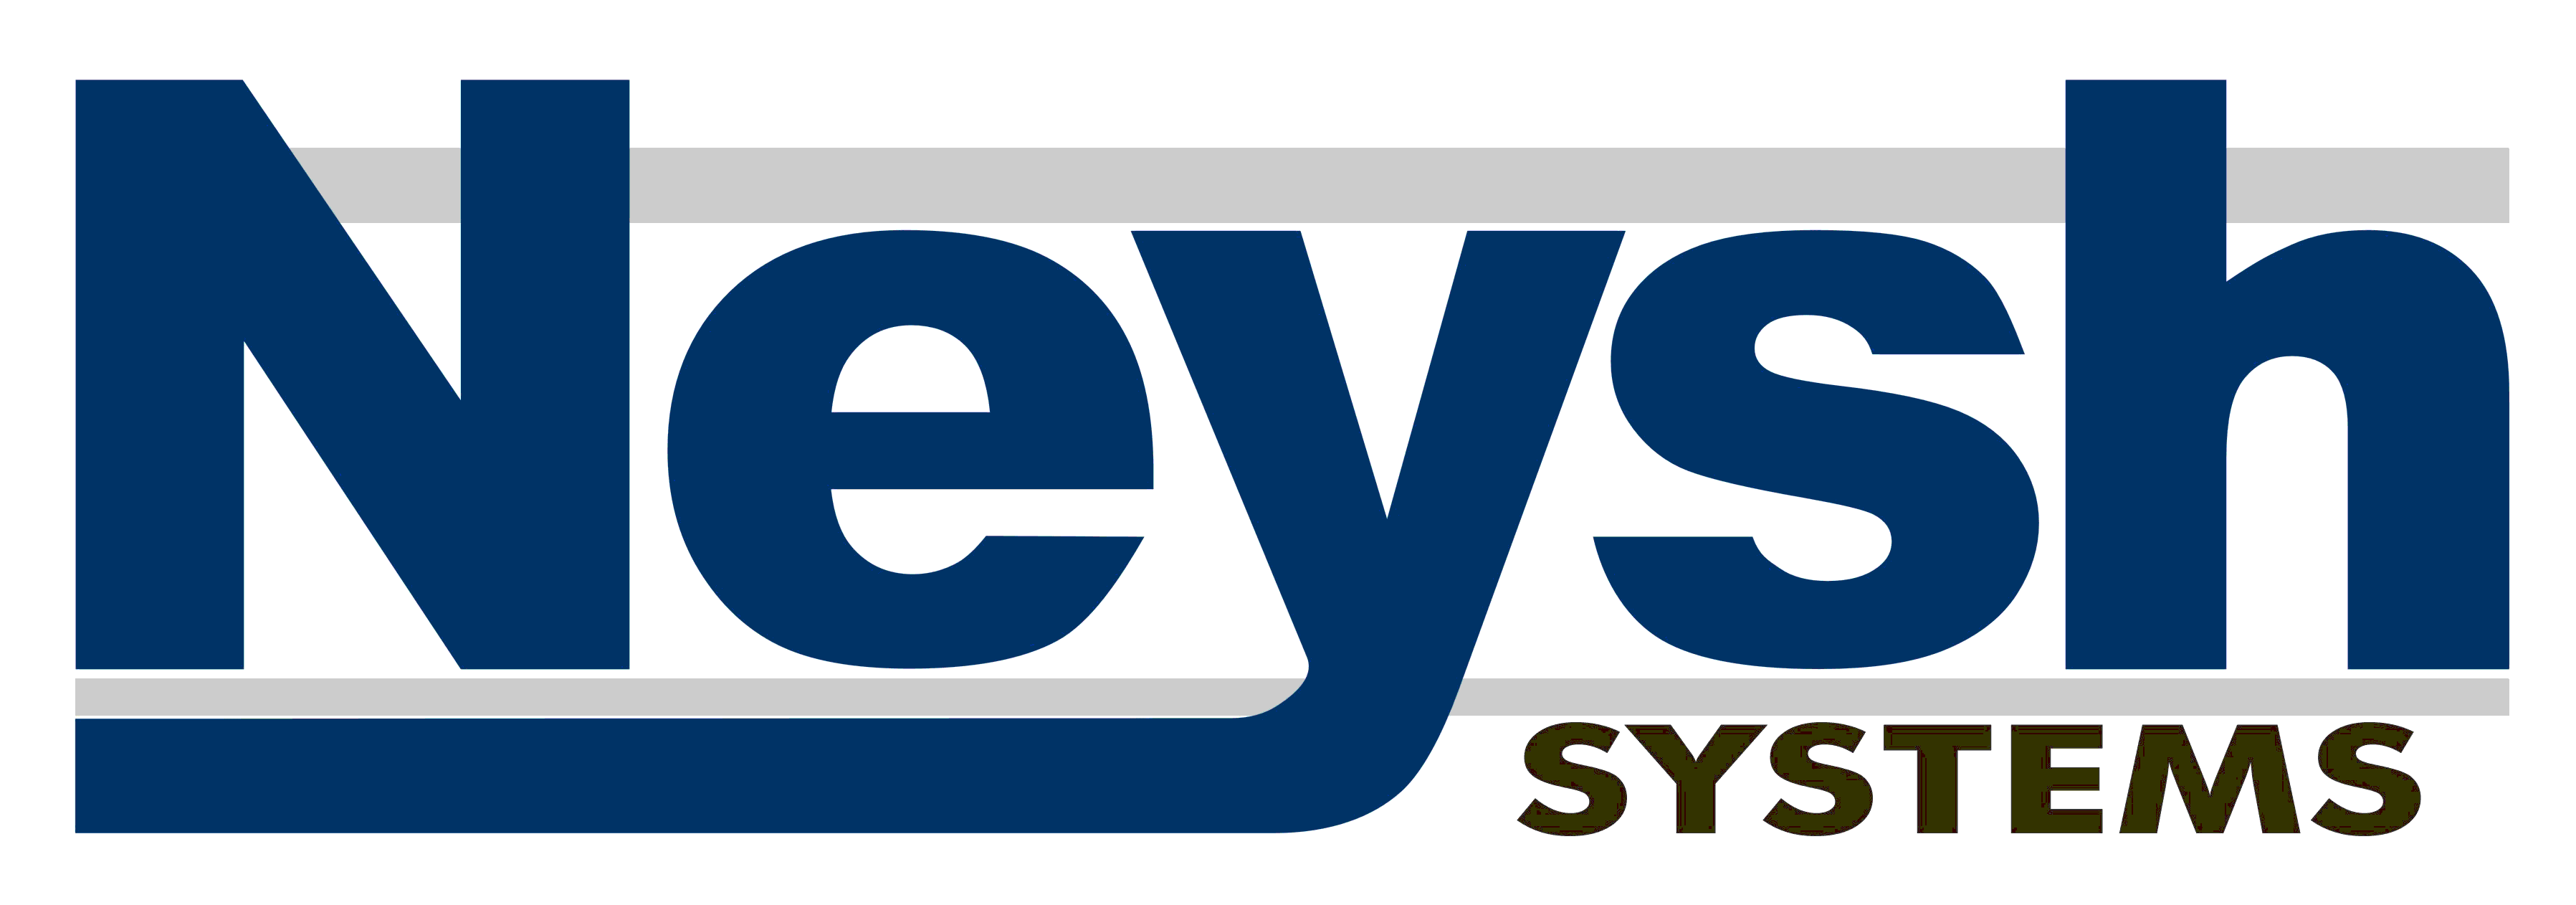 Neysh Systems